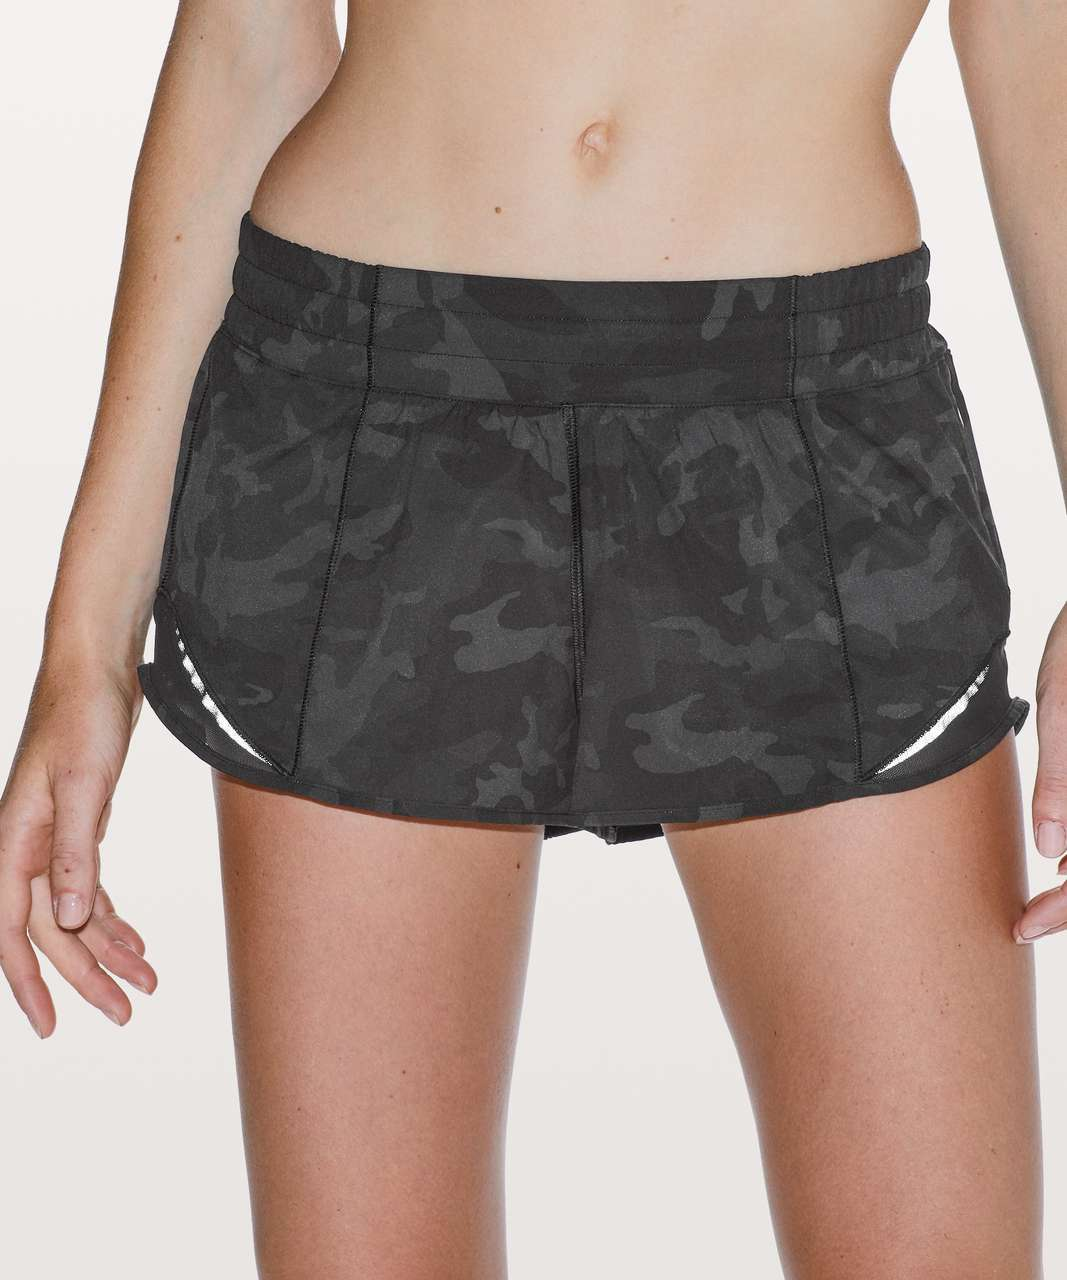 """Lululemon Hotty Hot Short II *2.5"""" - Incognito Camo Multi Grey / Black (First Release)"""